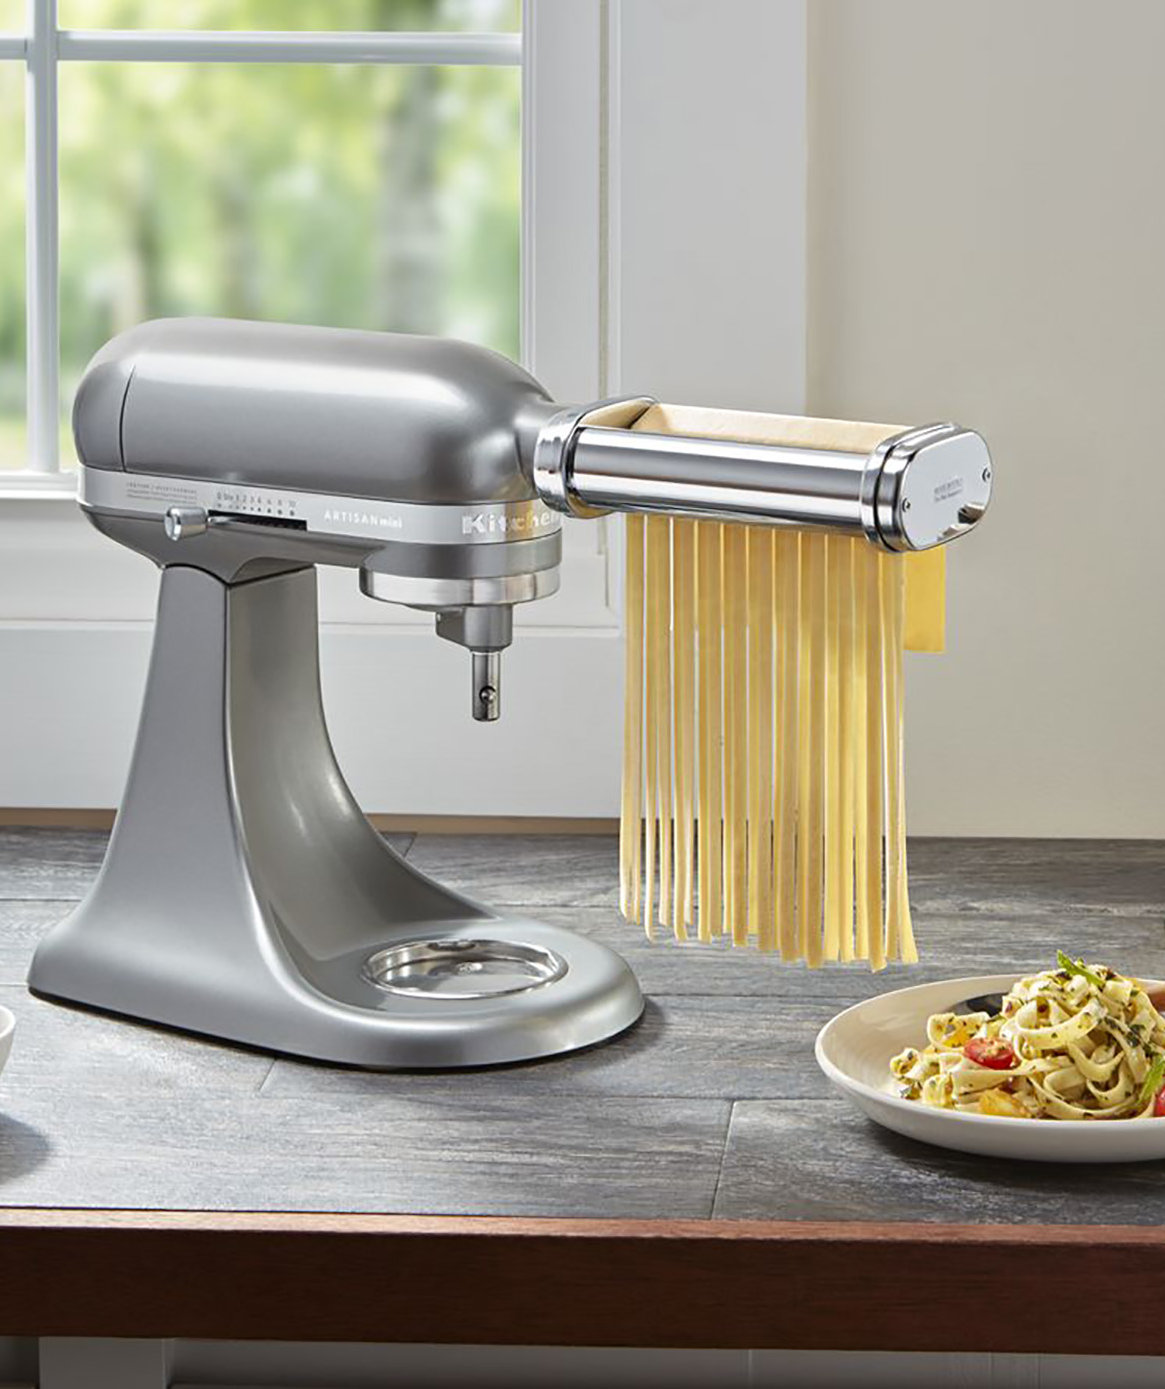 The Best KitchenAid Appliances and Stand Mixer Attachments